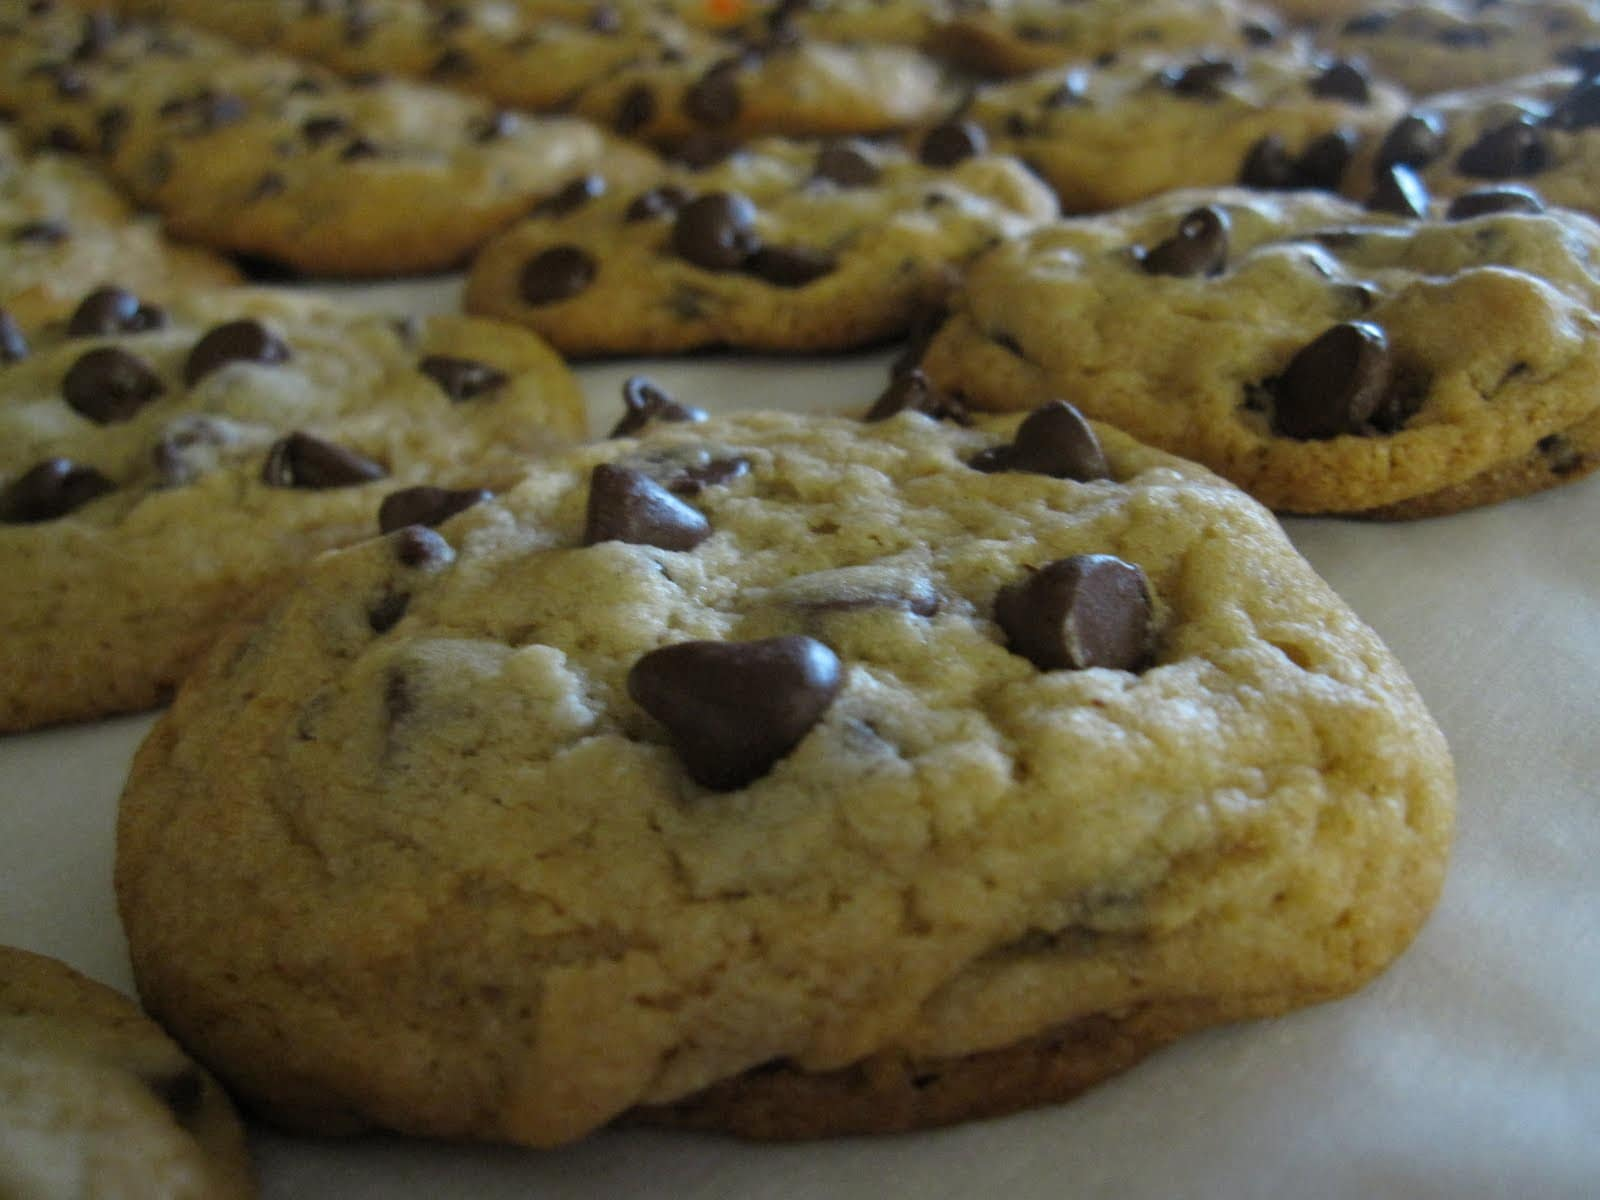 Close-up of a chocolate chip cookie